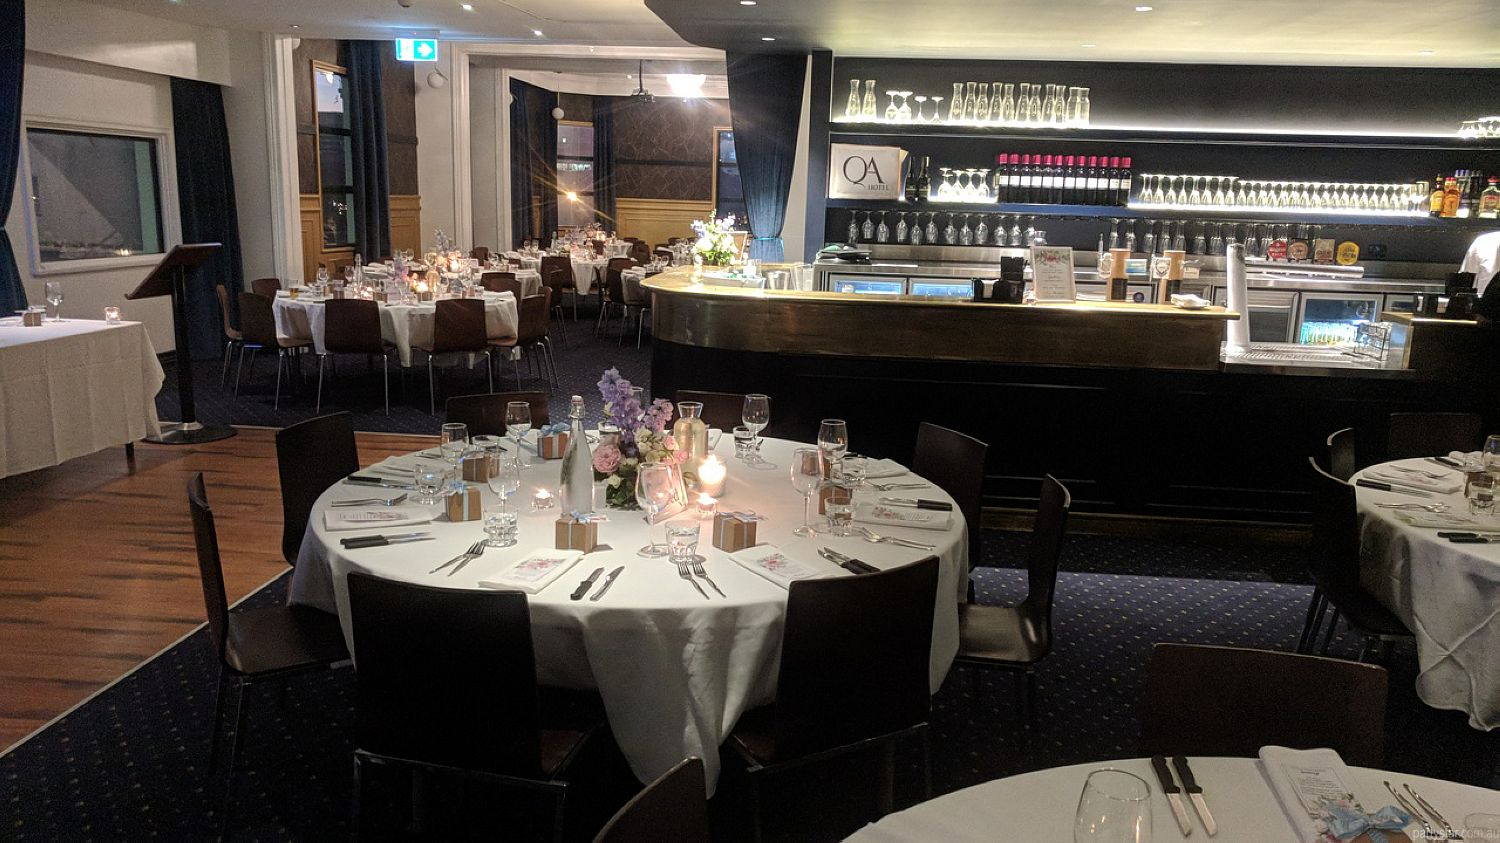 QA Hotel, Fortitude Valley, QLD. Function Room hire photo #4